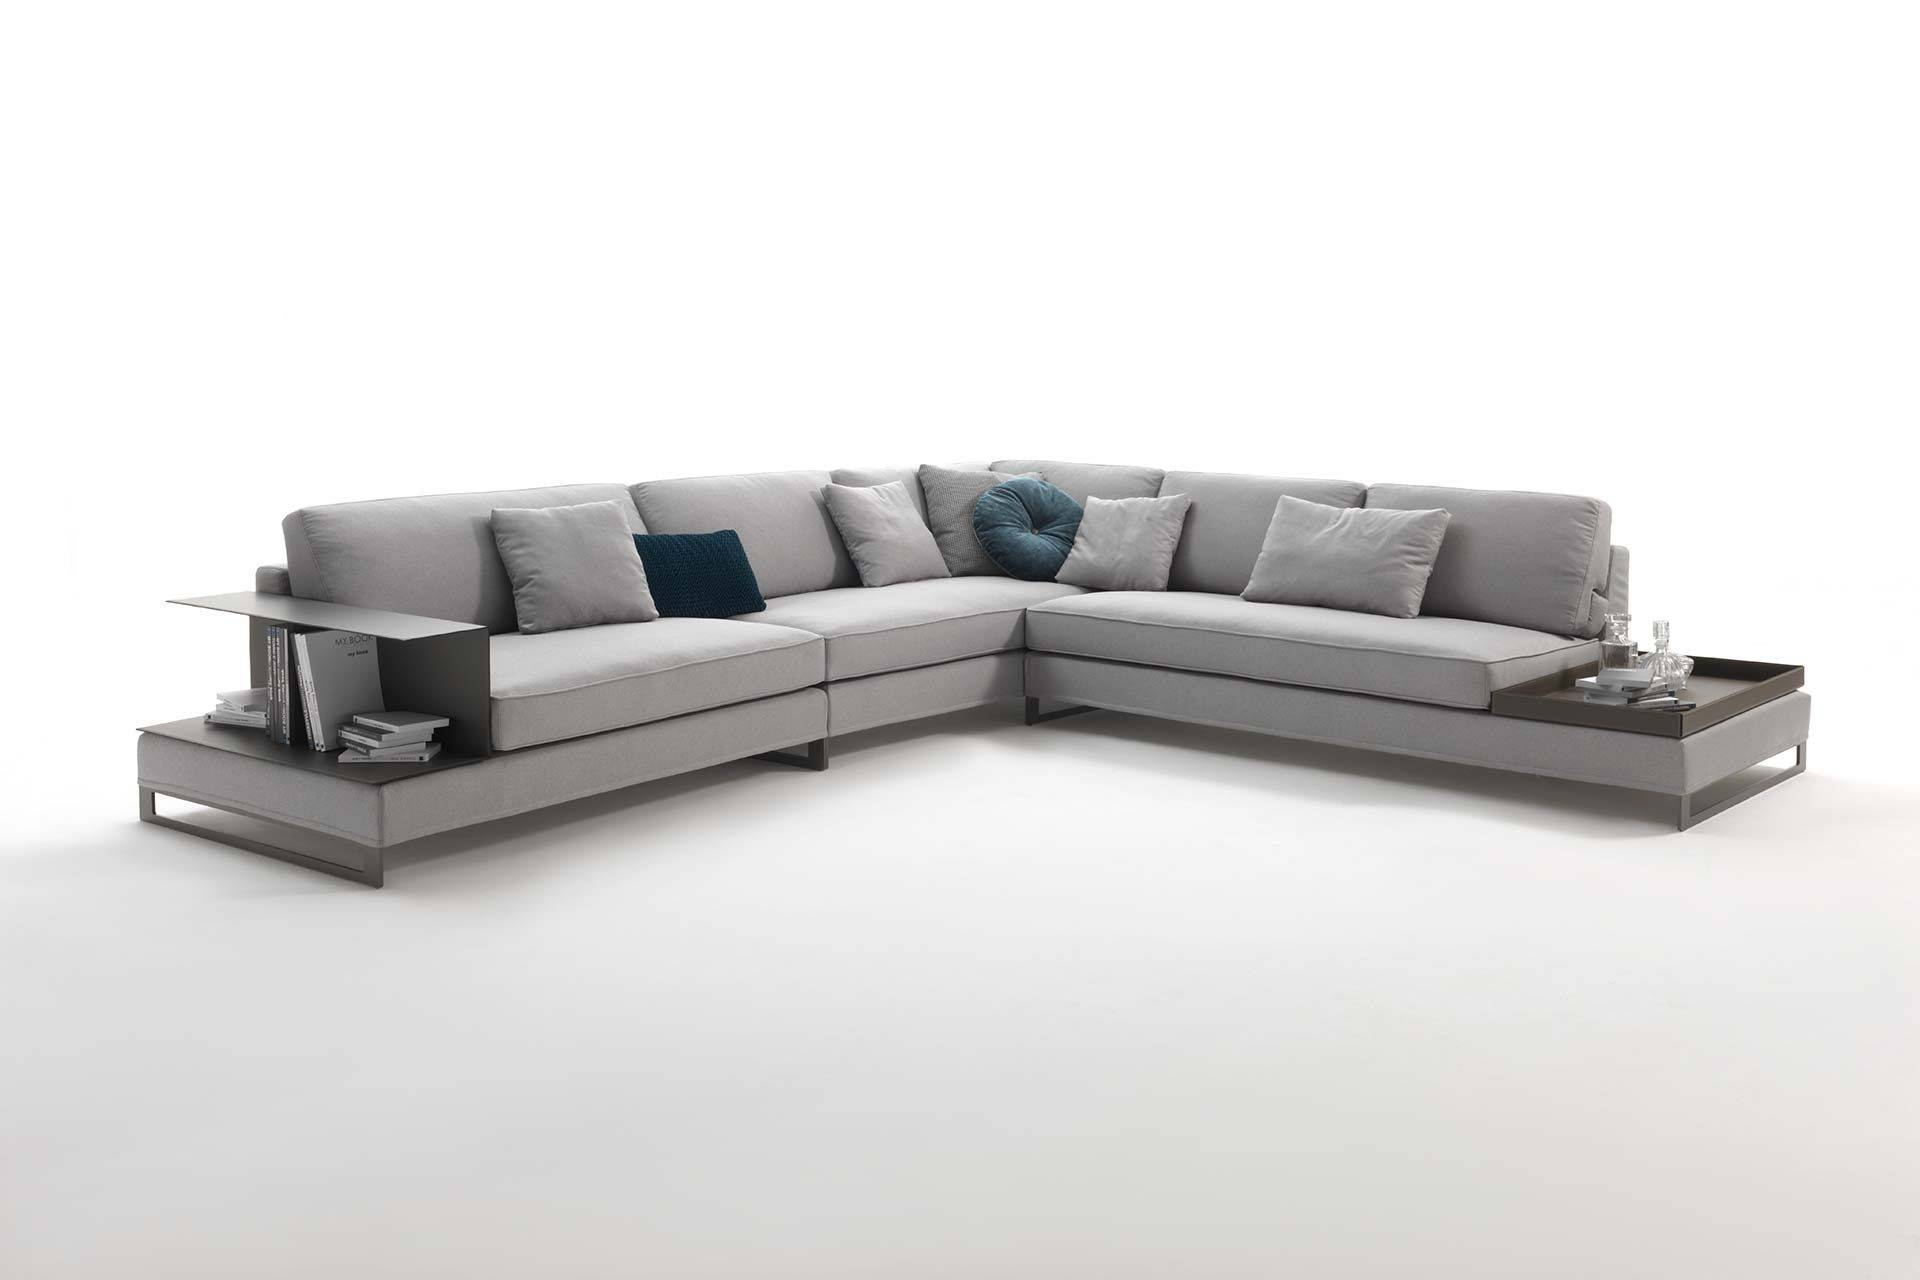 Modular Sofa / Contemporary / Fabric / Leather - Davis Case throughout Contemporary Fabric Sofas (Image 21 of 30)